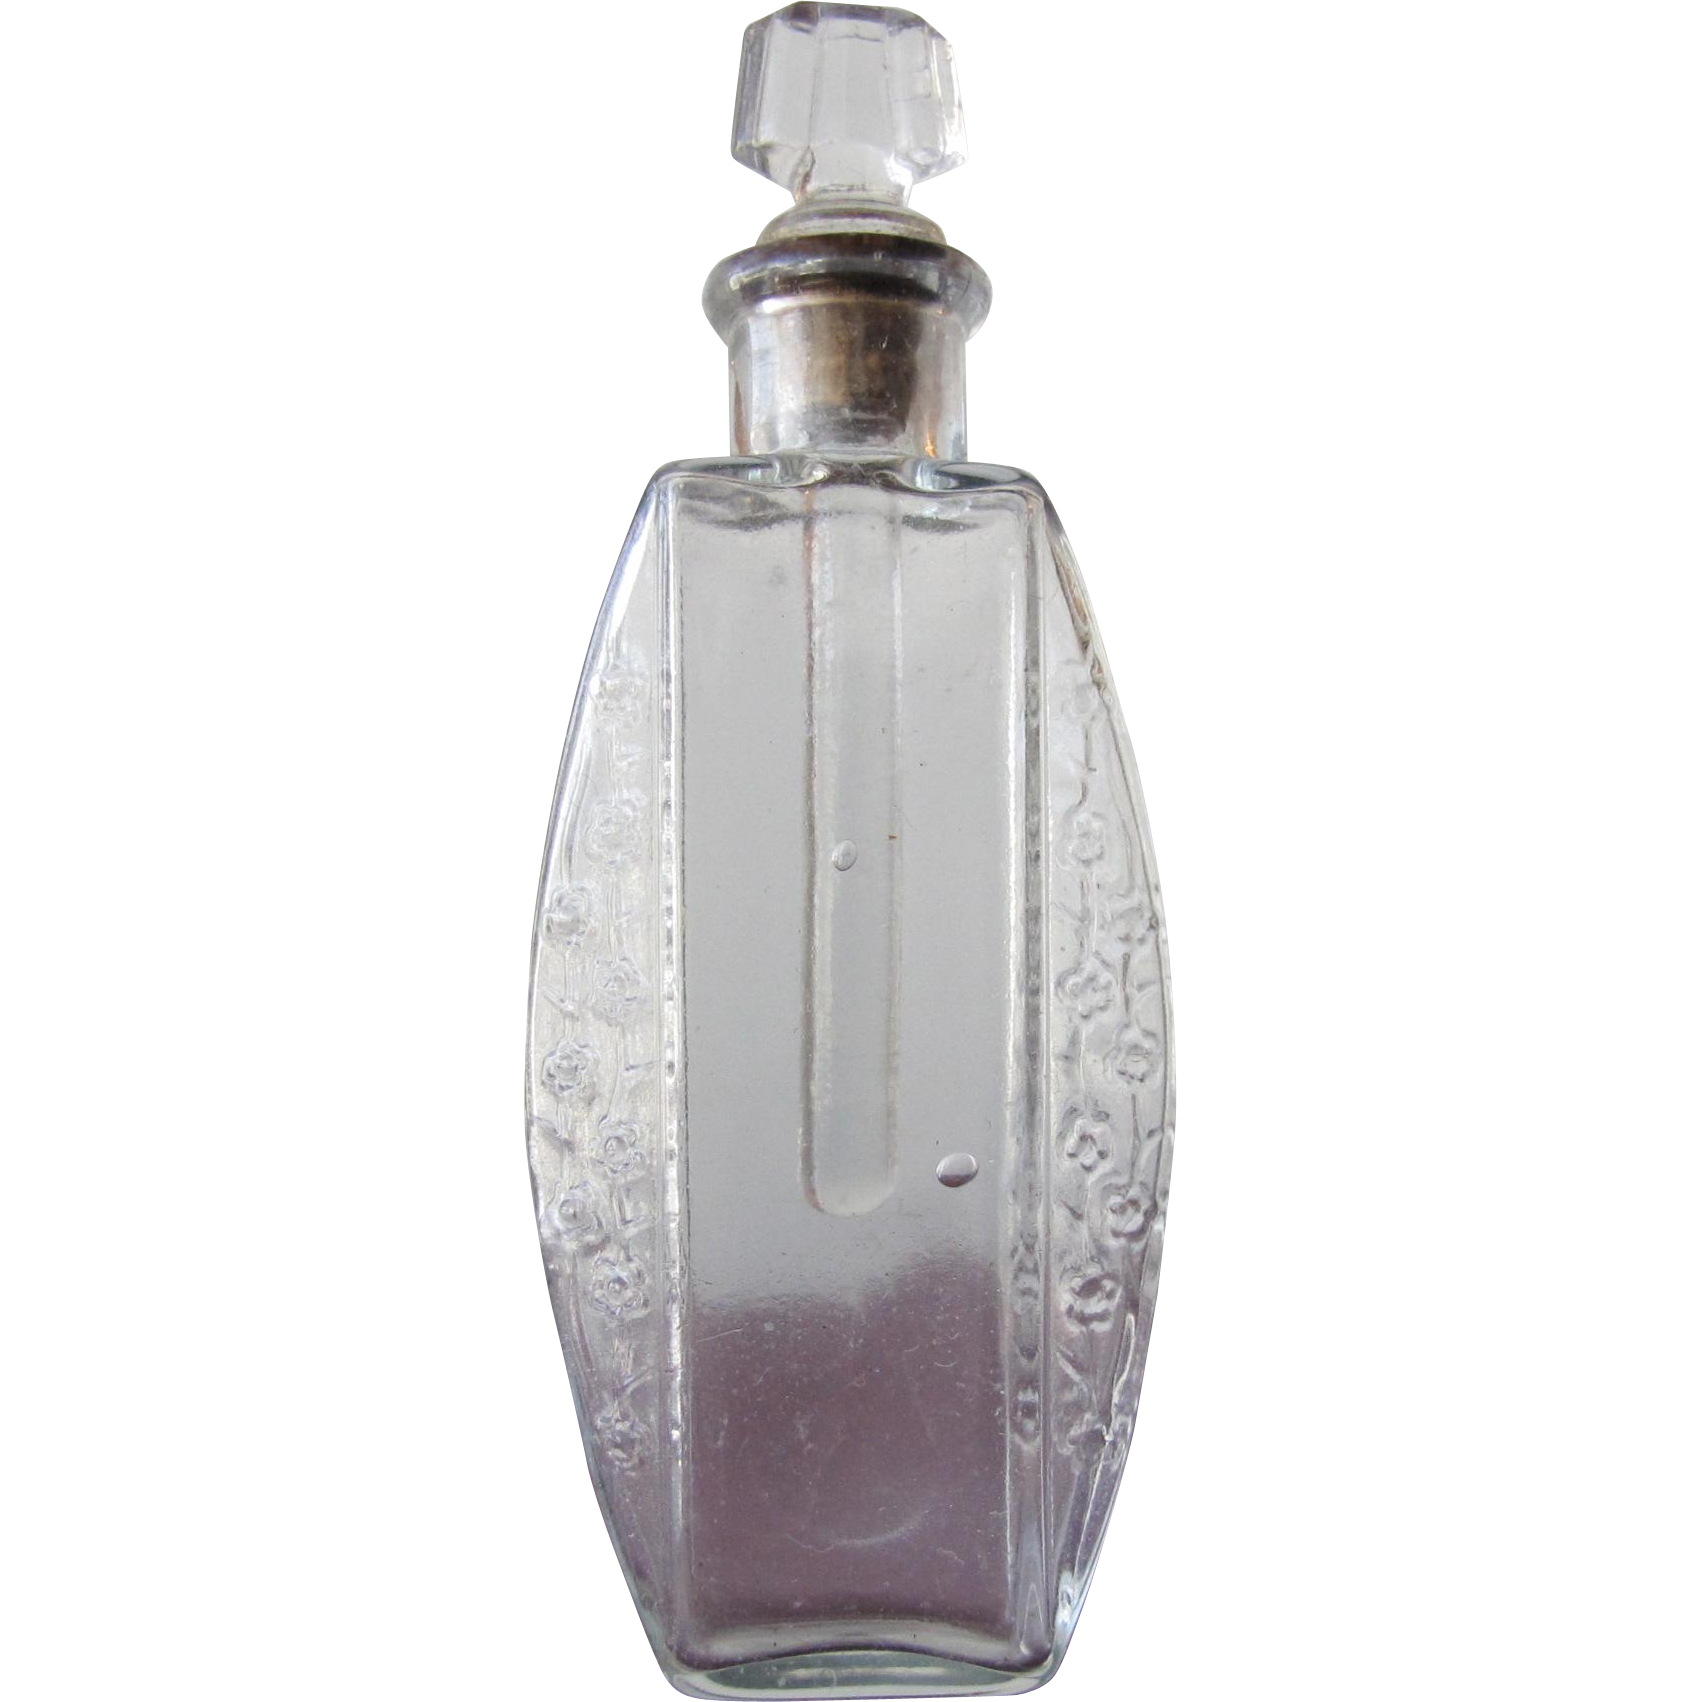 1900 Commercial Perfume Bottle with Cork and Dauber